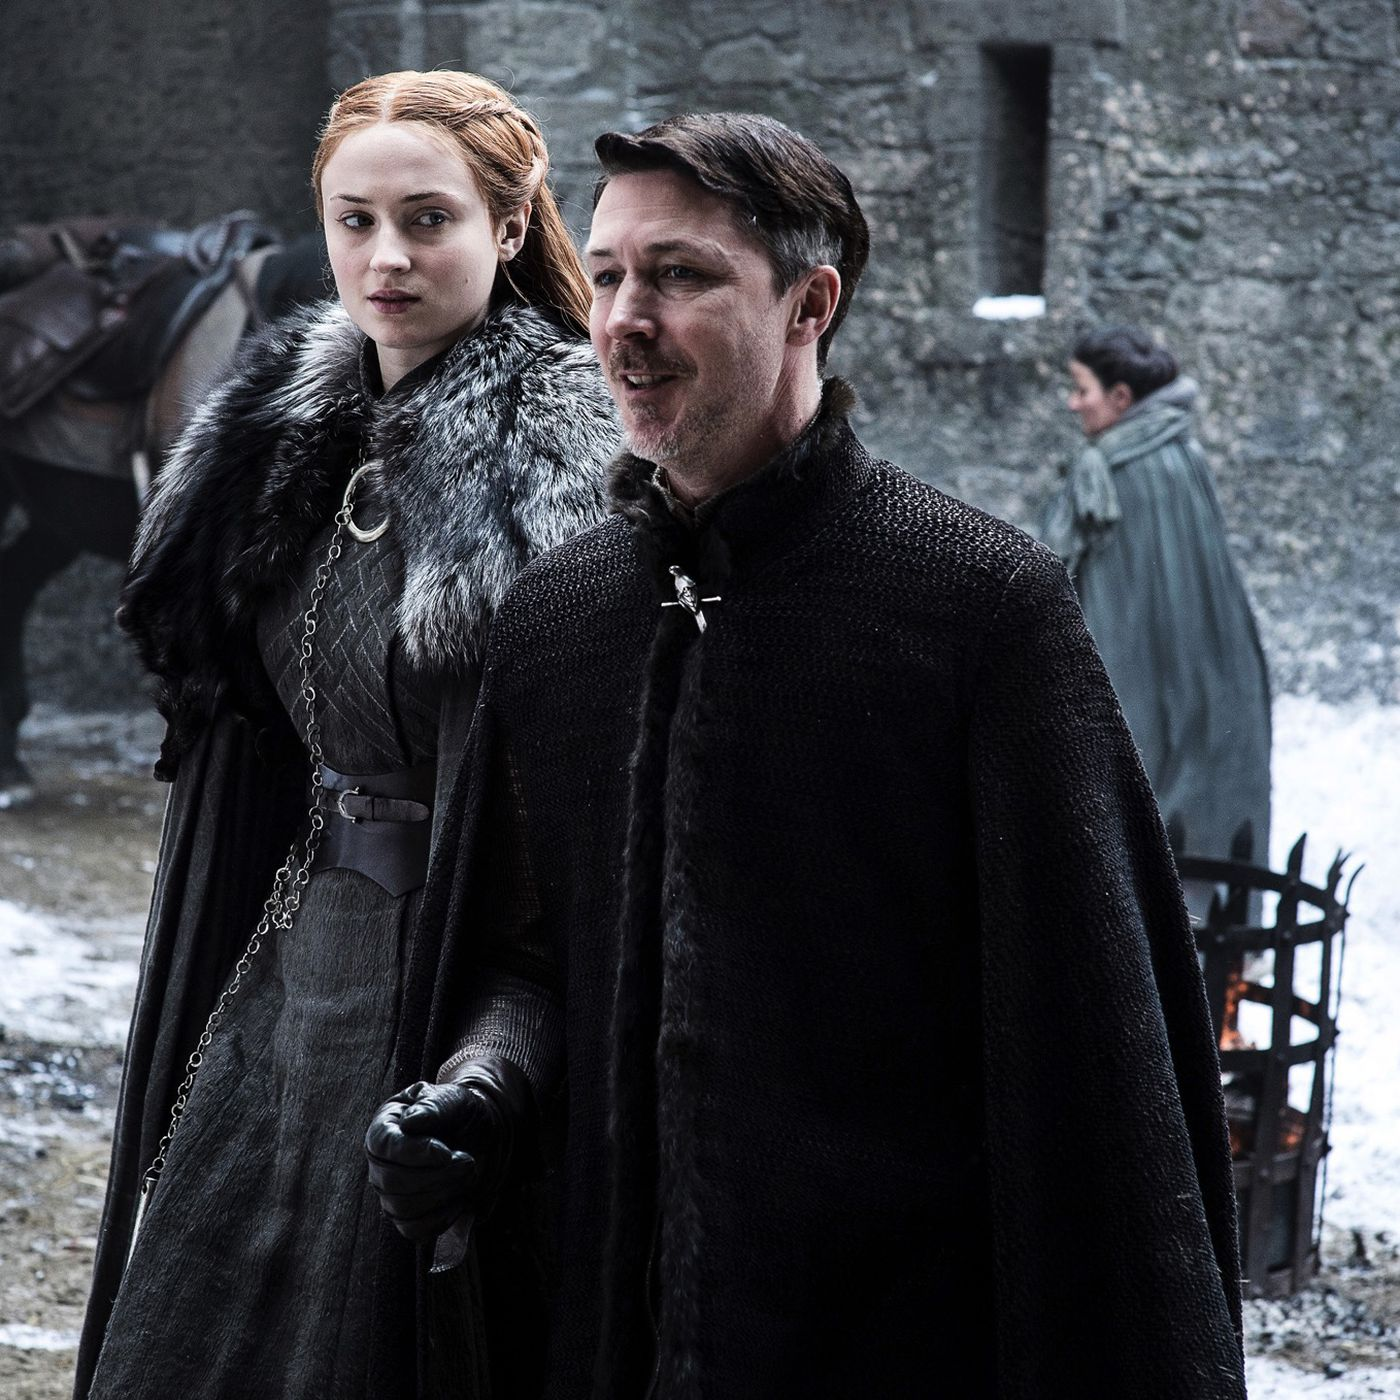 Lore of Thrones: What exactly was Littlefinger's long-term